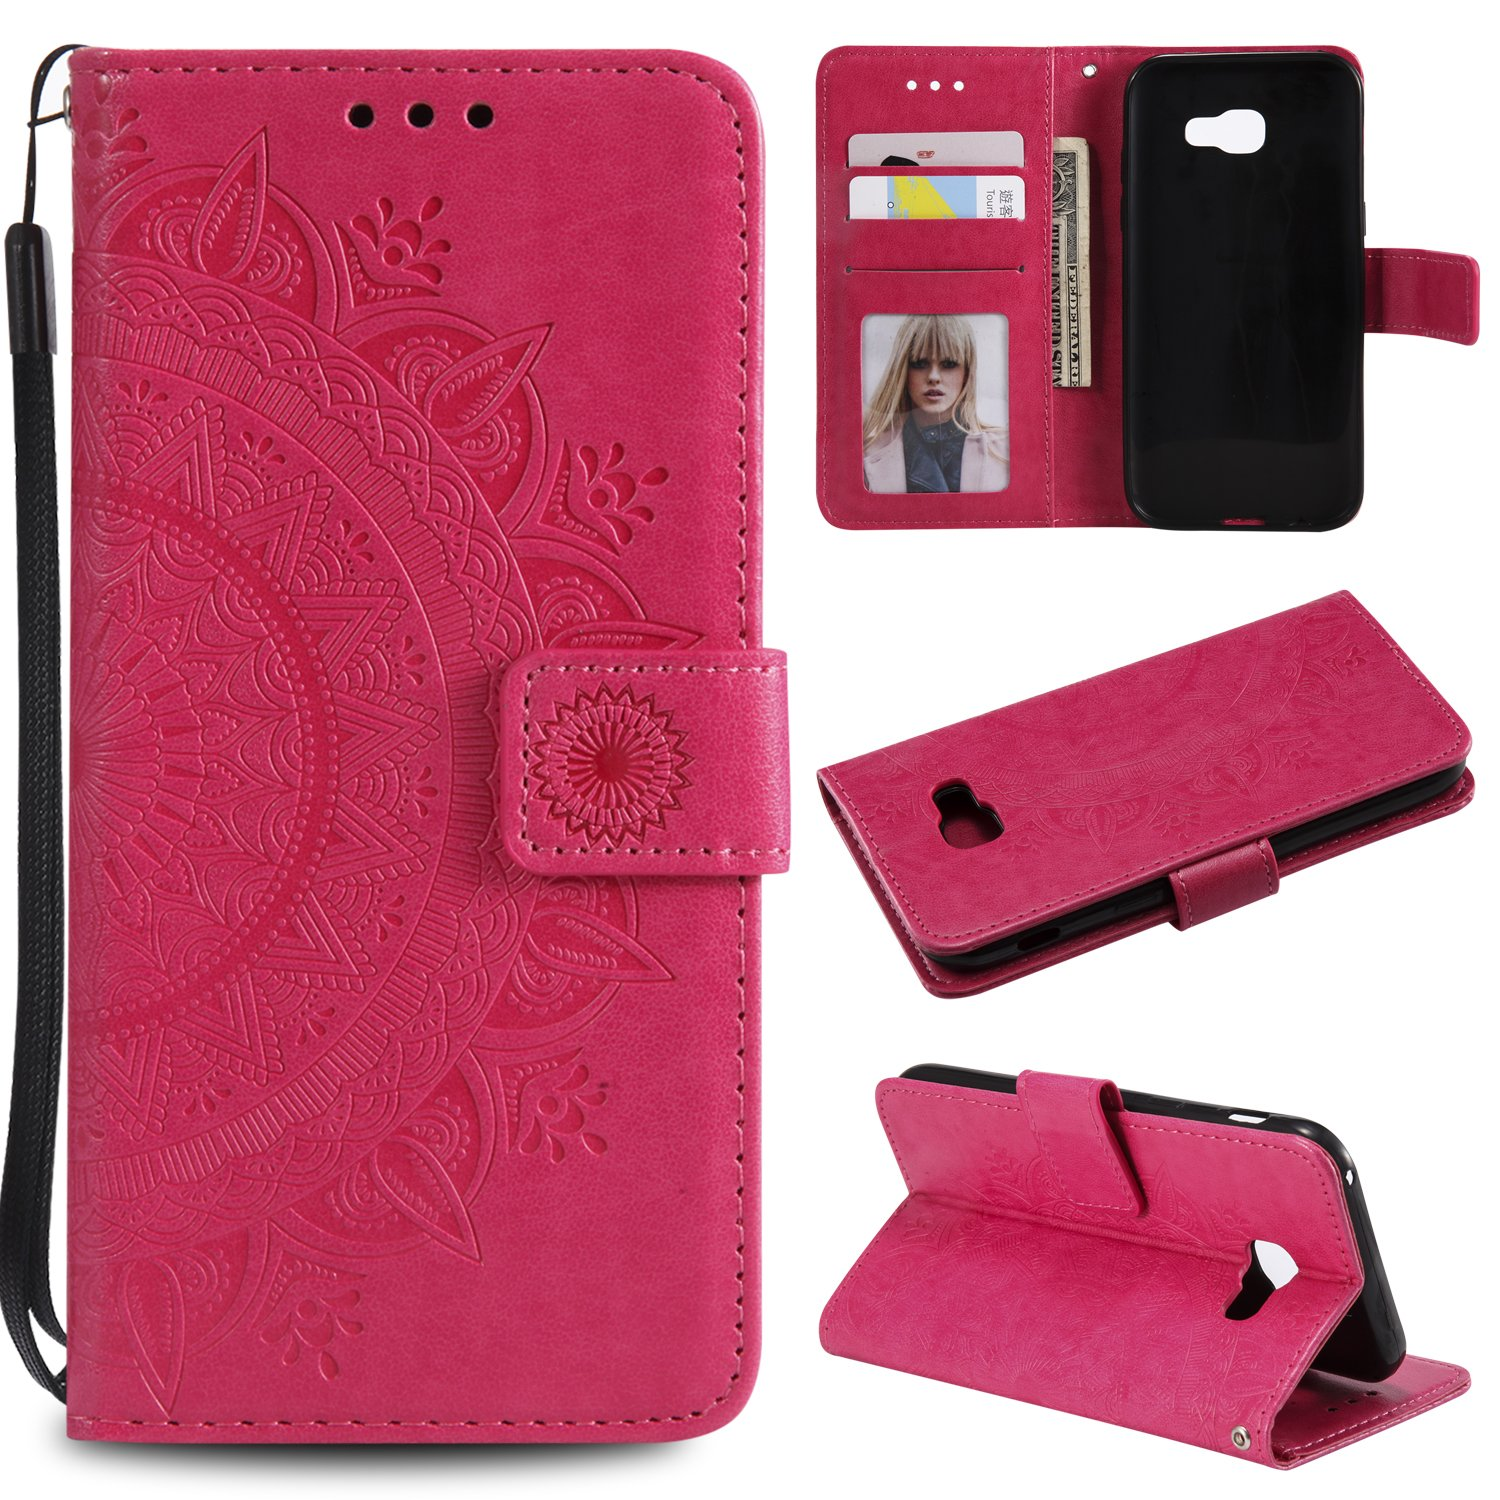 Galaxy A5 2017 Floral Wallet Case,Galaxy A5 2017 Strap Flip Case,Leecase Embossed Totem Flower Design Pu Leather Bookstyle Stand Flip Case for Samsung Galaxy A5 2017-Red